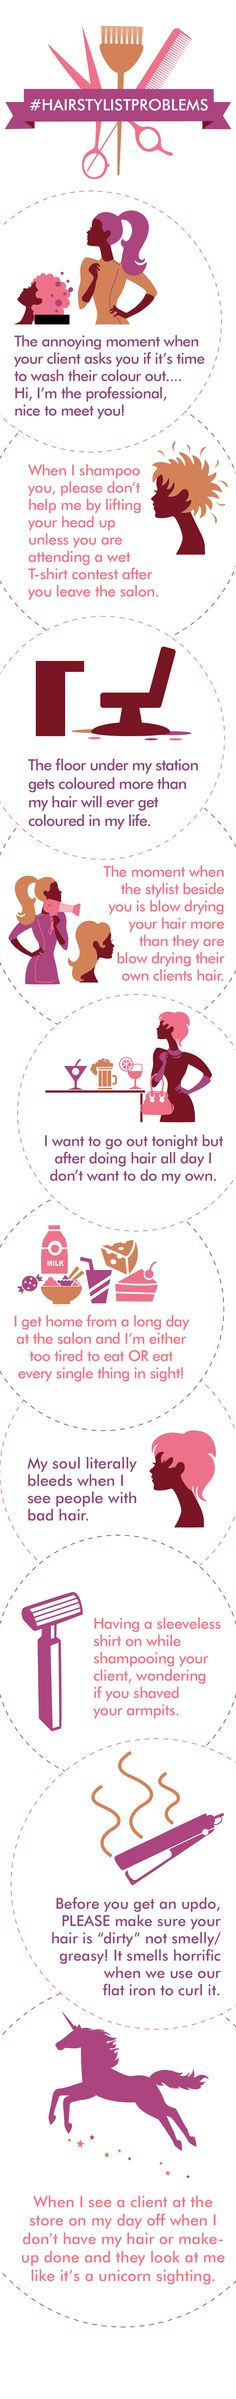 HairstylistProblems-infographic-2.png 900×9,150 pixels